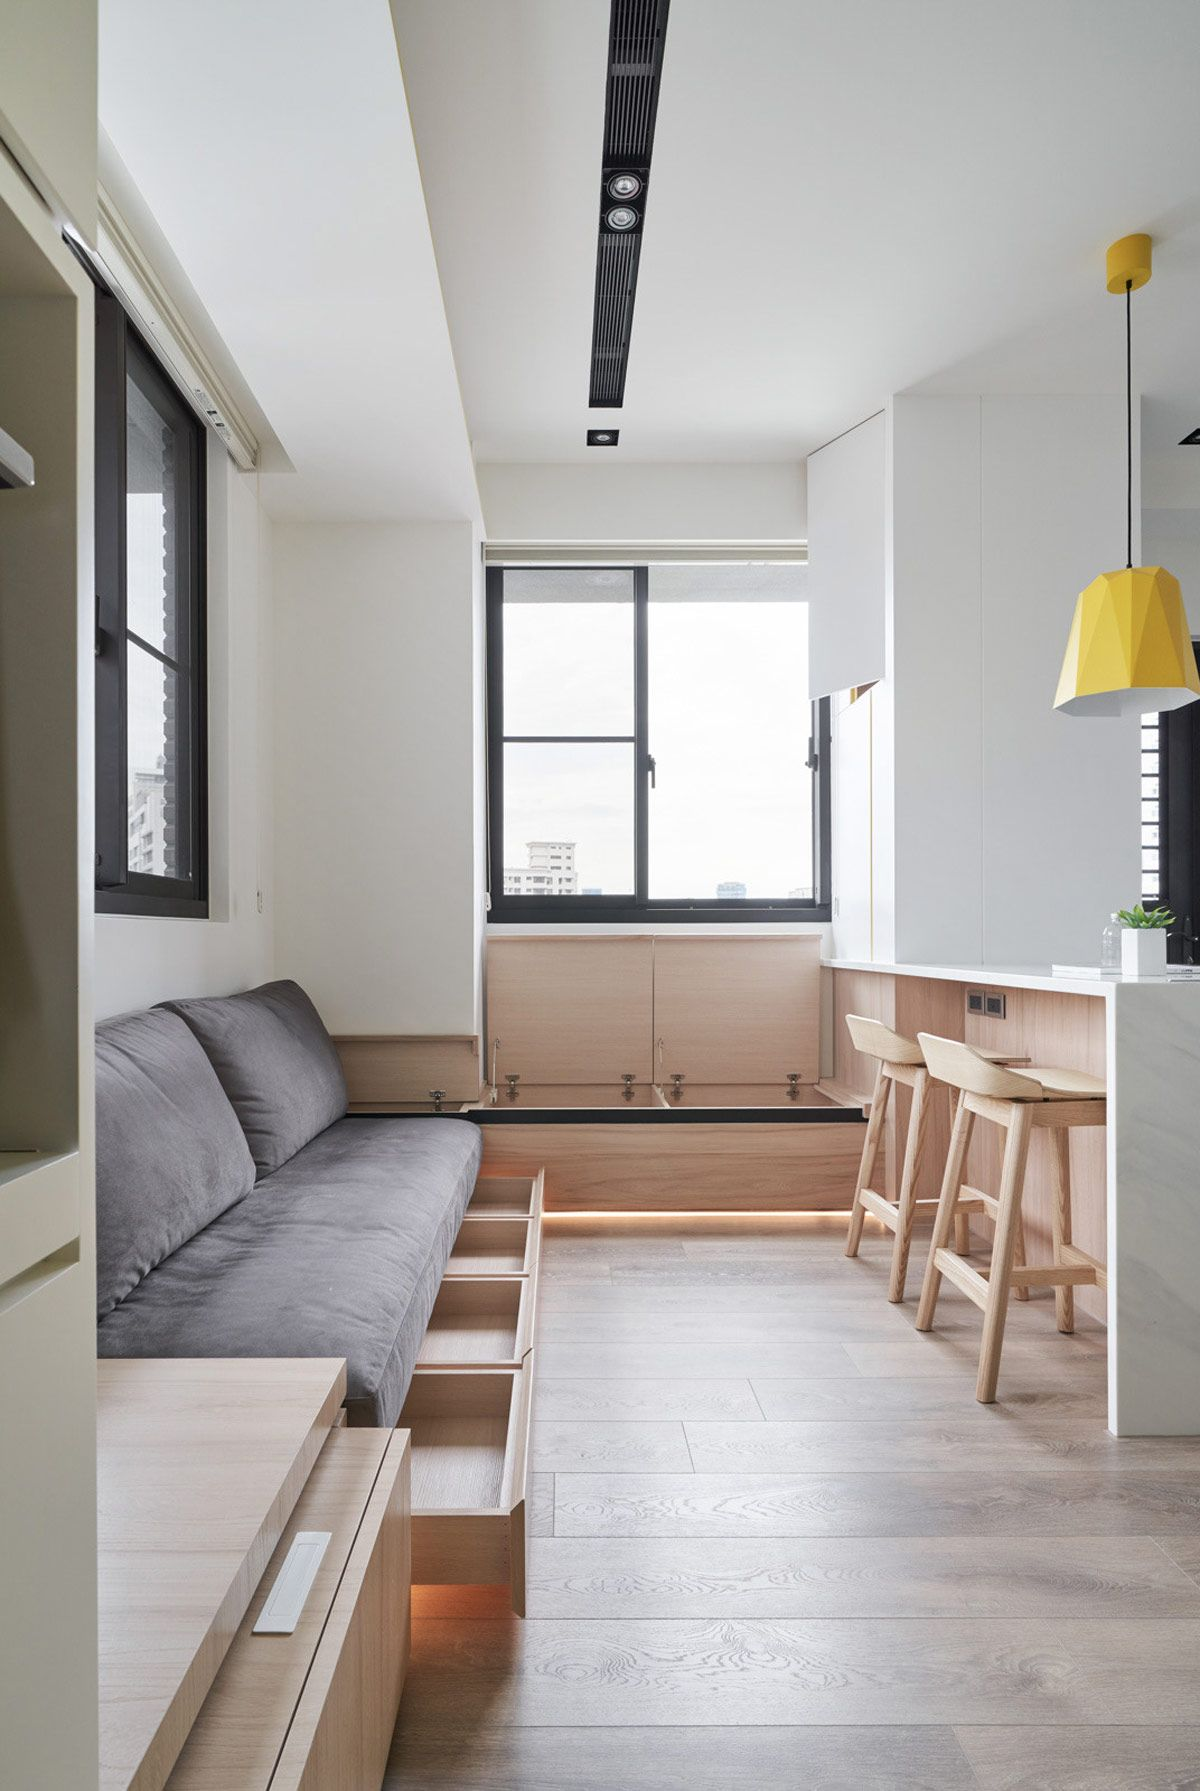 Small Interiors Made Airy With White And Yellow Decor And ...